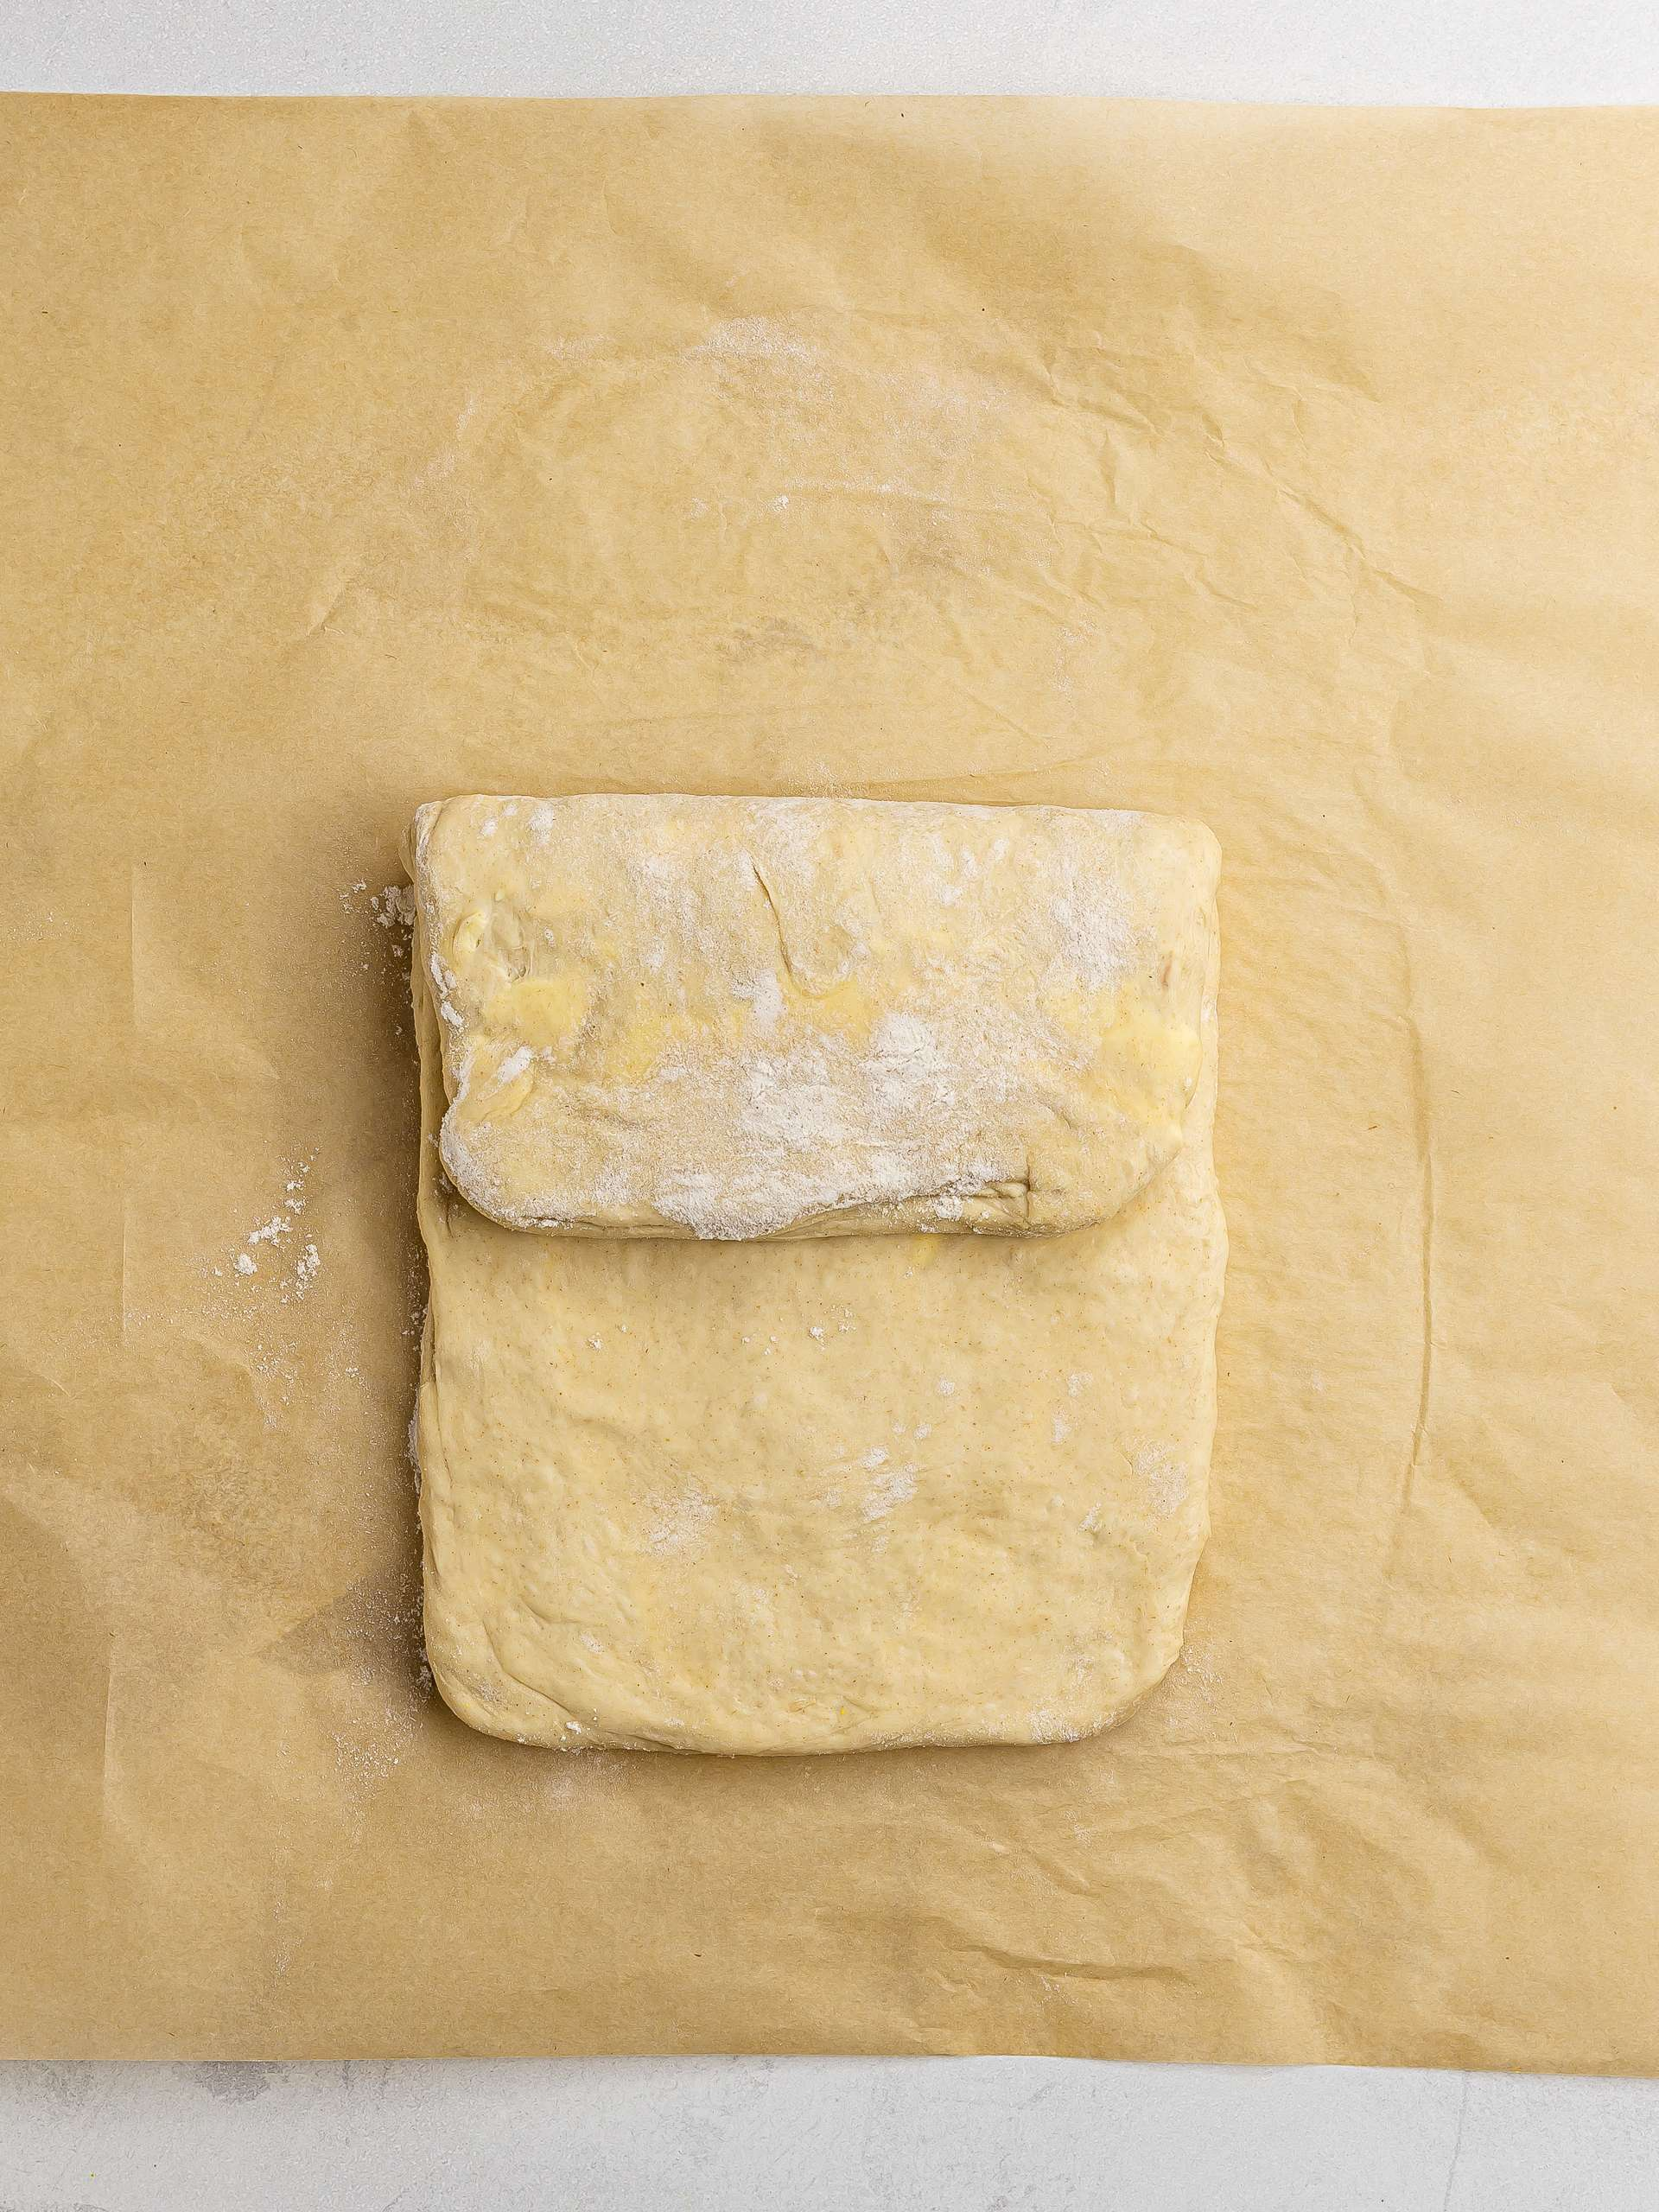 how to roll and fold pastry dough